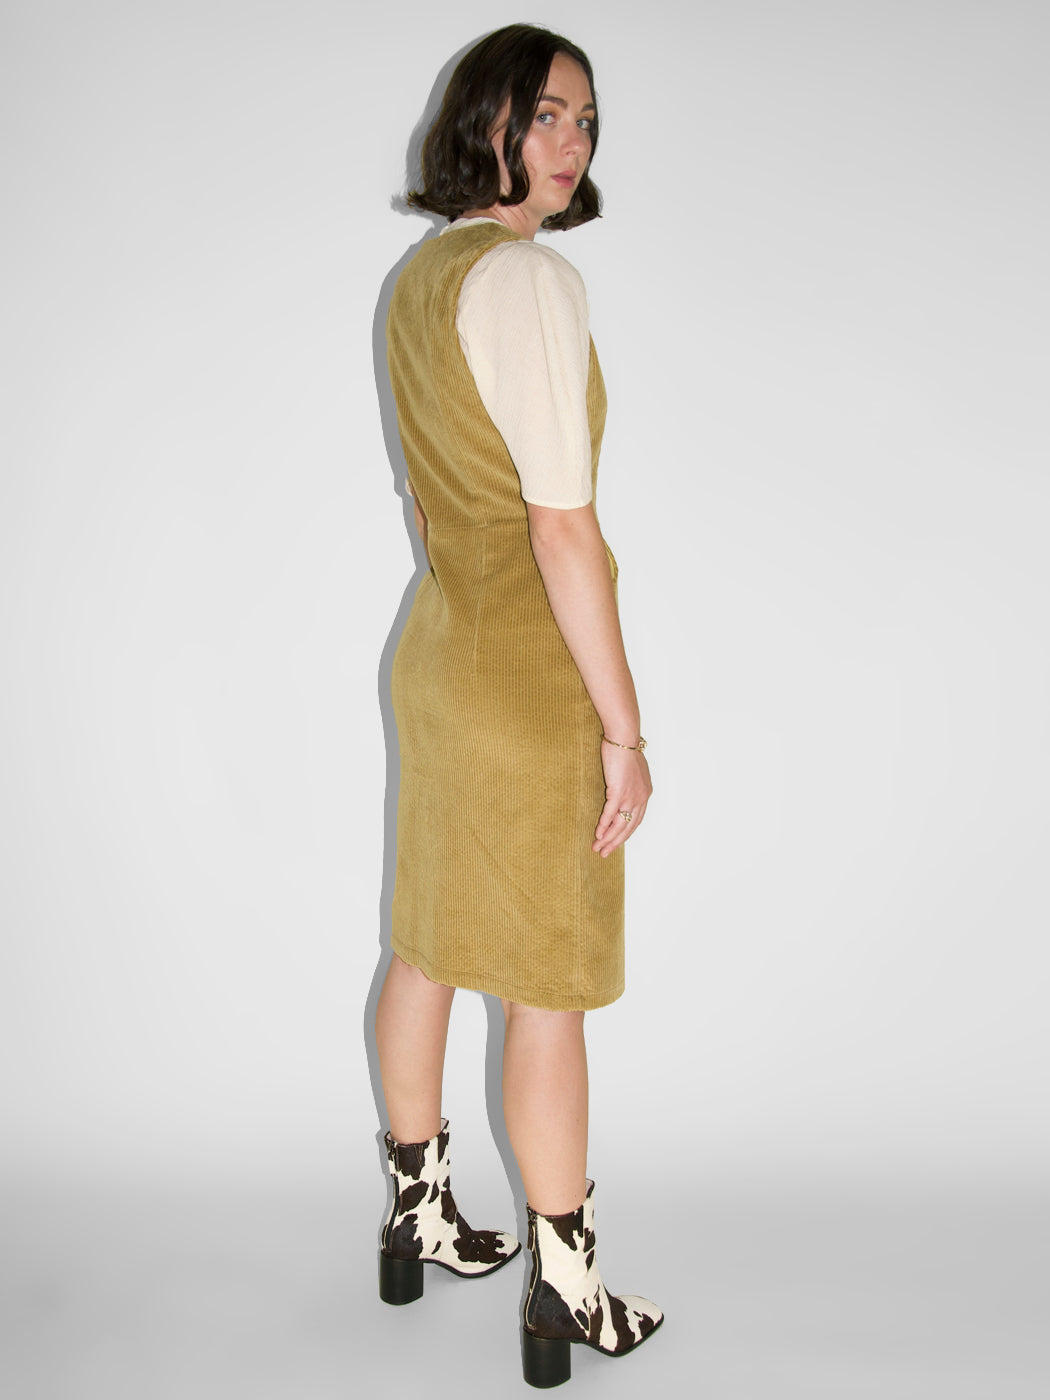 Eve Gravel - Delirium Dress / Sepia